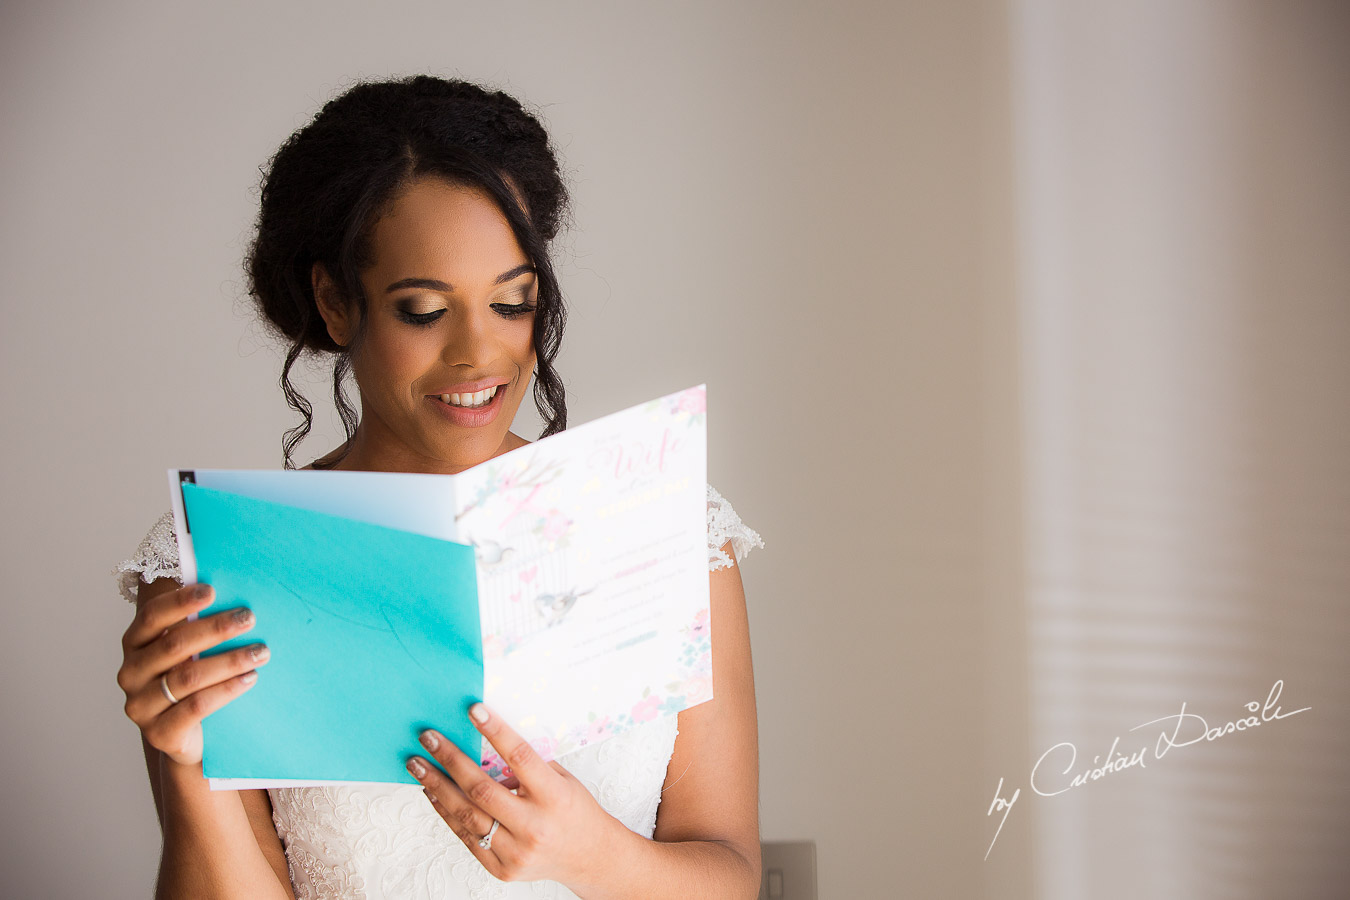 The bride reading her letter from the groom, moments captured at a wedding at Minthis Hills in Cyprus, by Cristian Dascalu.